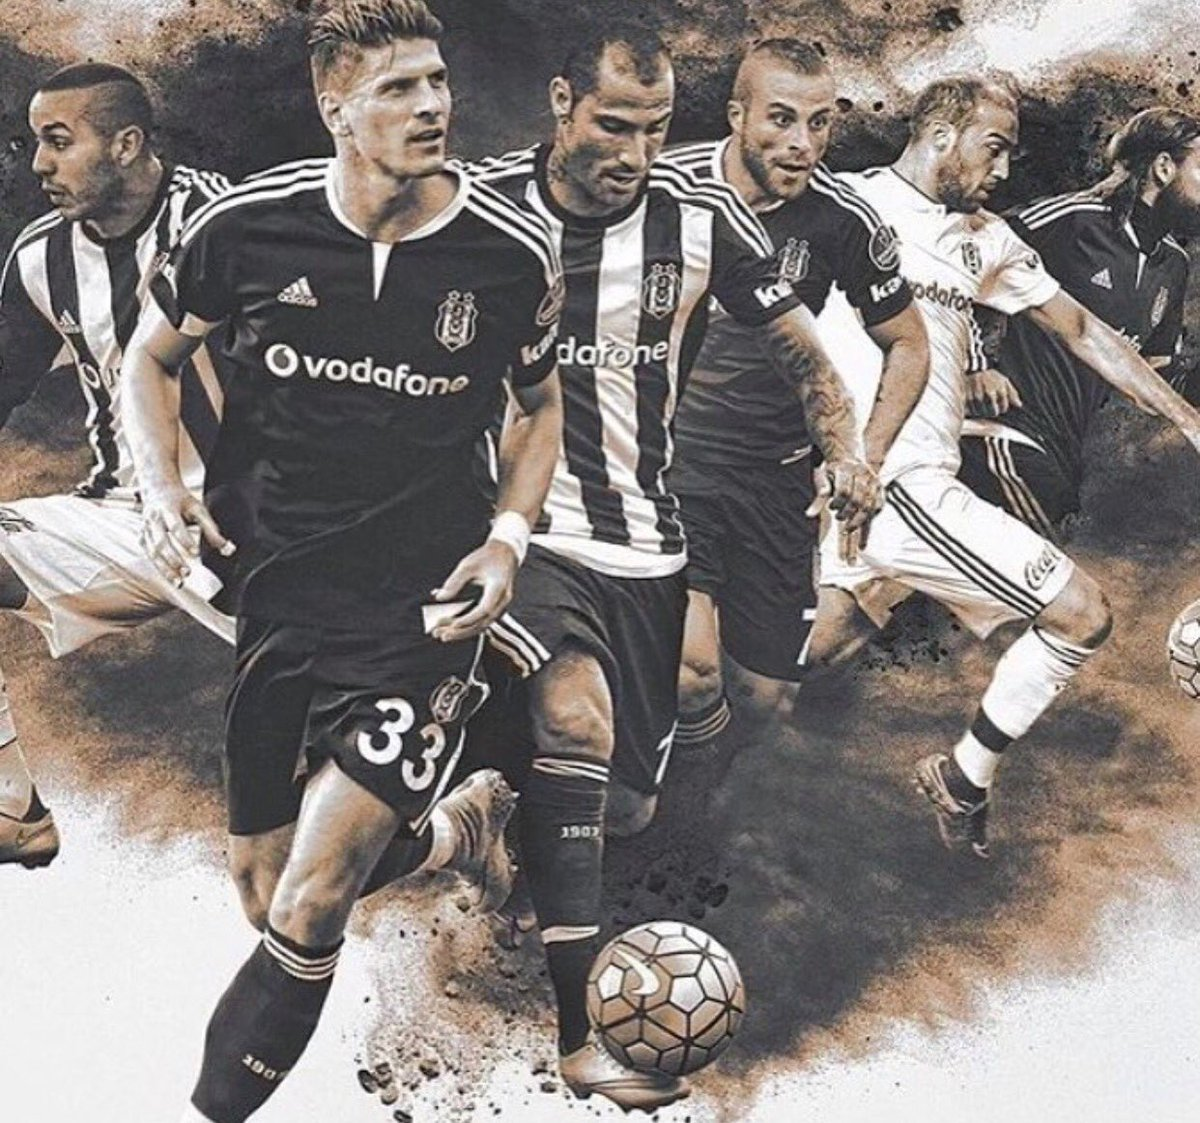 There is still one more step to go! Let's stay focused and hungry! 💪🏽⚫️⚪️ #besiktas#blackeagle #onemorepoint #bjk https://t.co/4jnAwf6Q5k